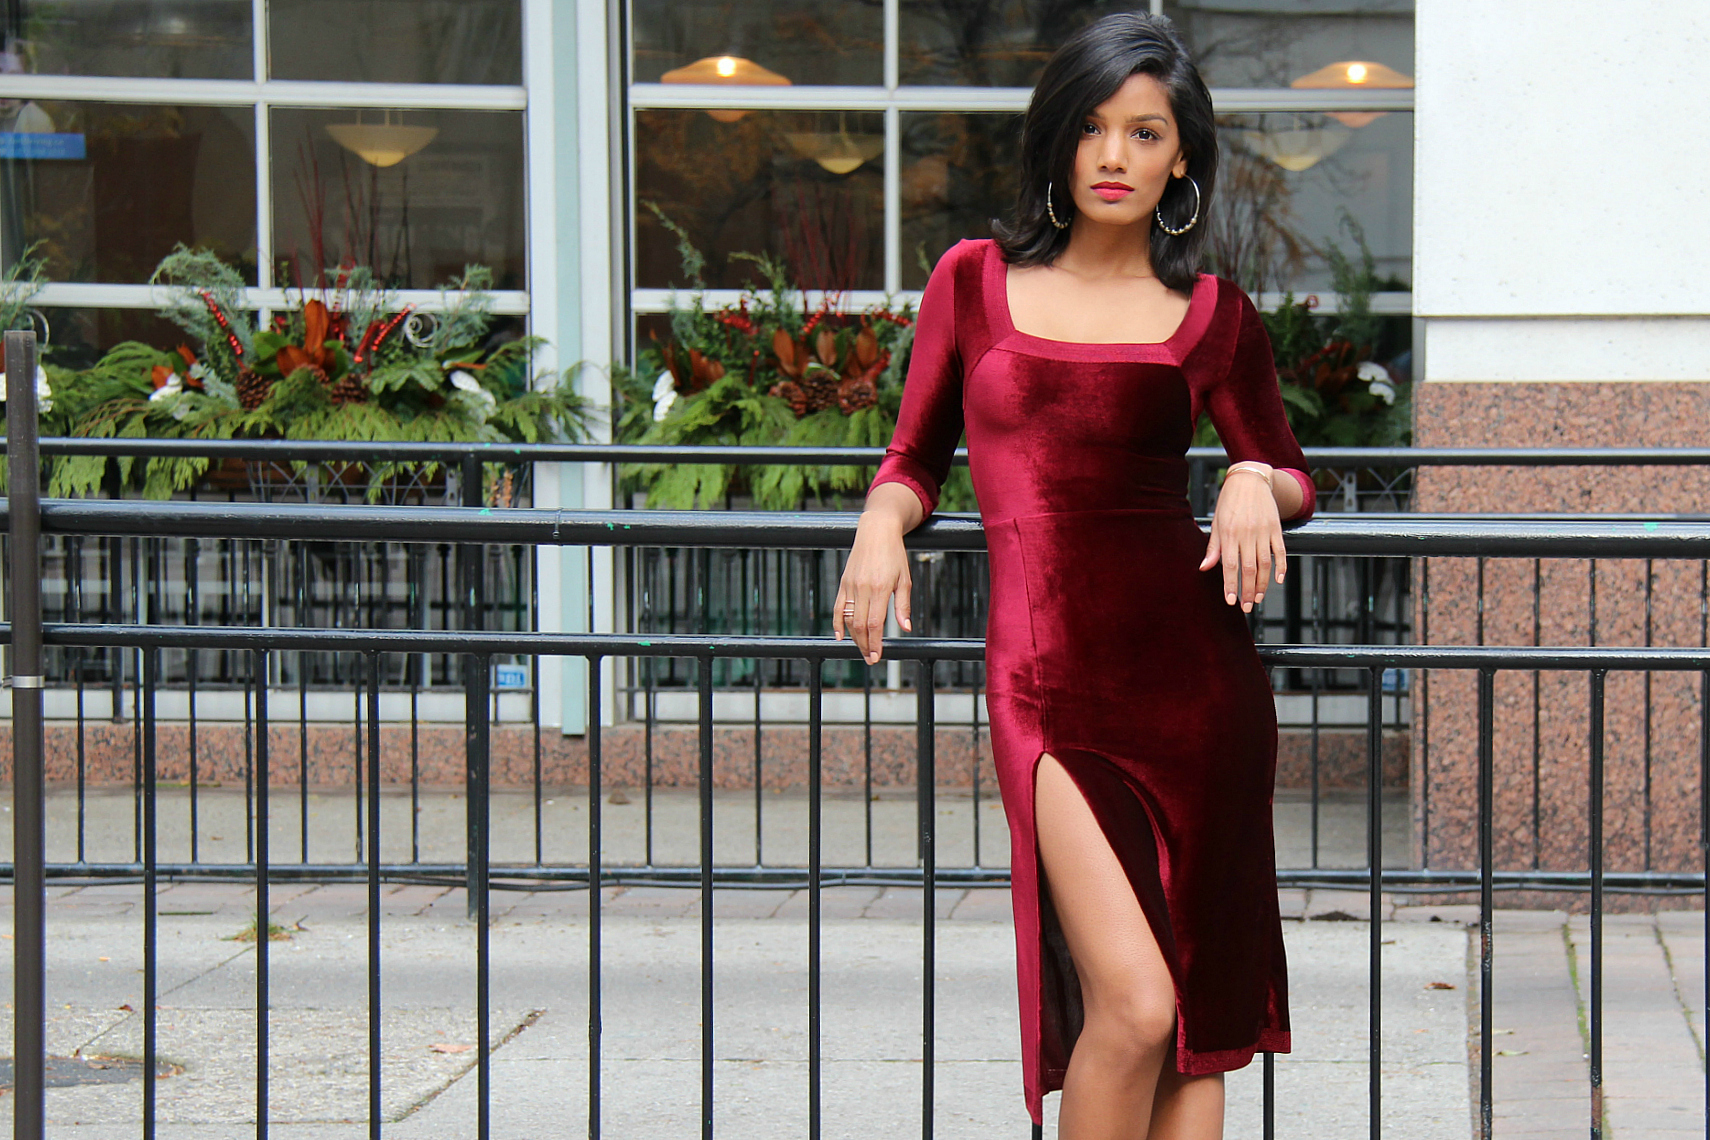 Sweet Shard DIY Red Velvet Dress High Slit. Medium-Wide shot of Sharadha wearing dress.